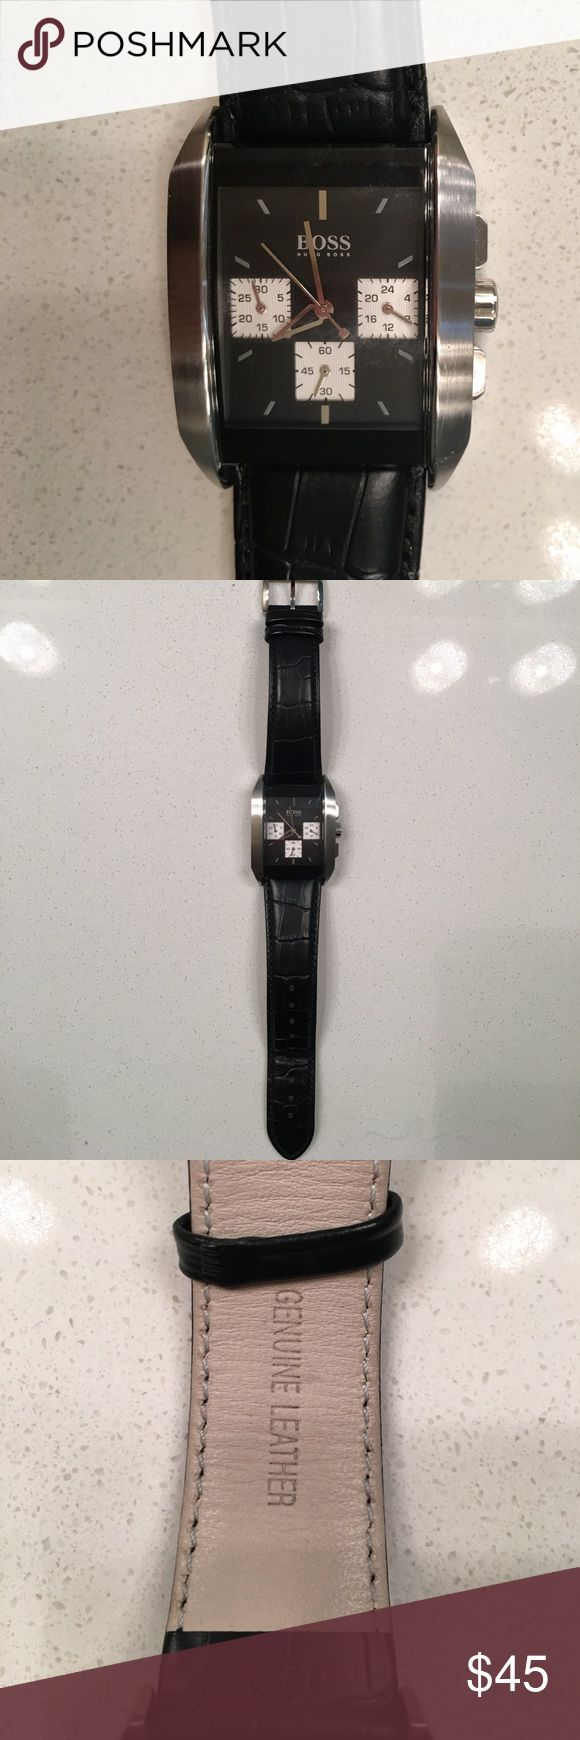 Men's Hugo Boss watch Good condition, authentic, watch only, needs new battery, real leather strap Accessories Watches